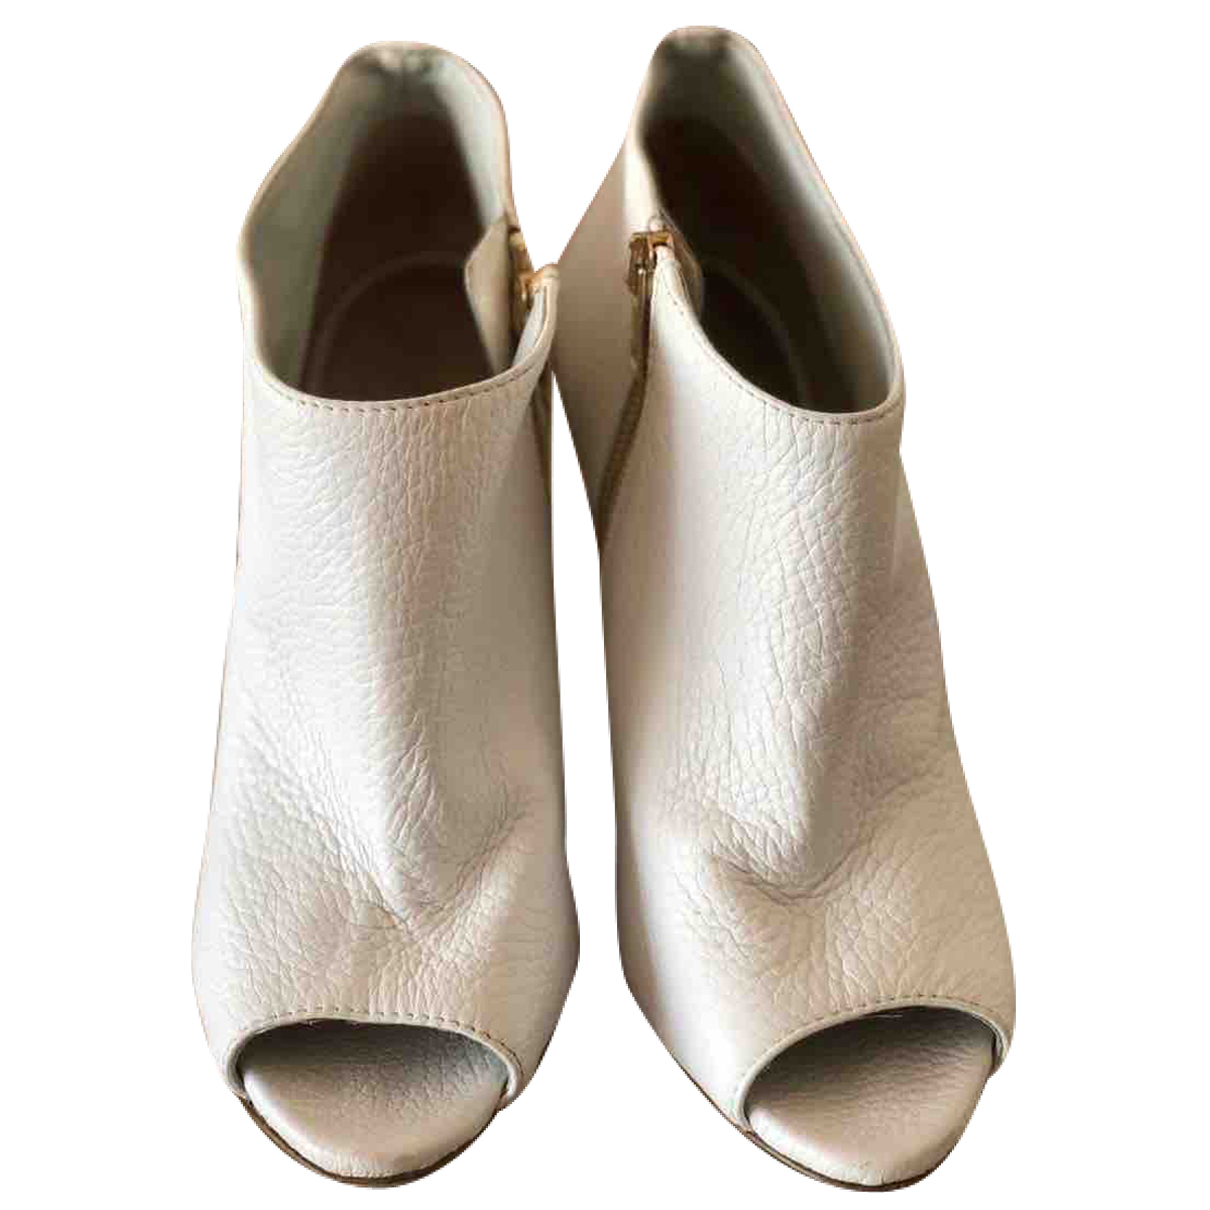 Burberry N White Leather Ankle boots for Women 37 EU